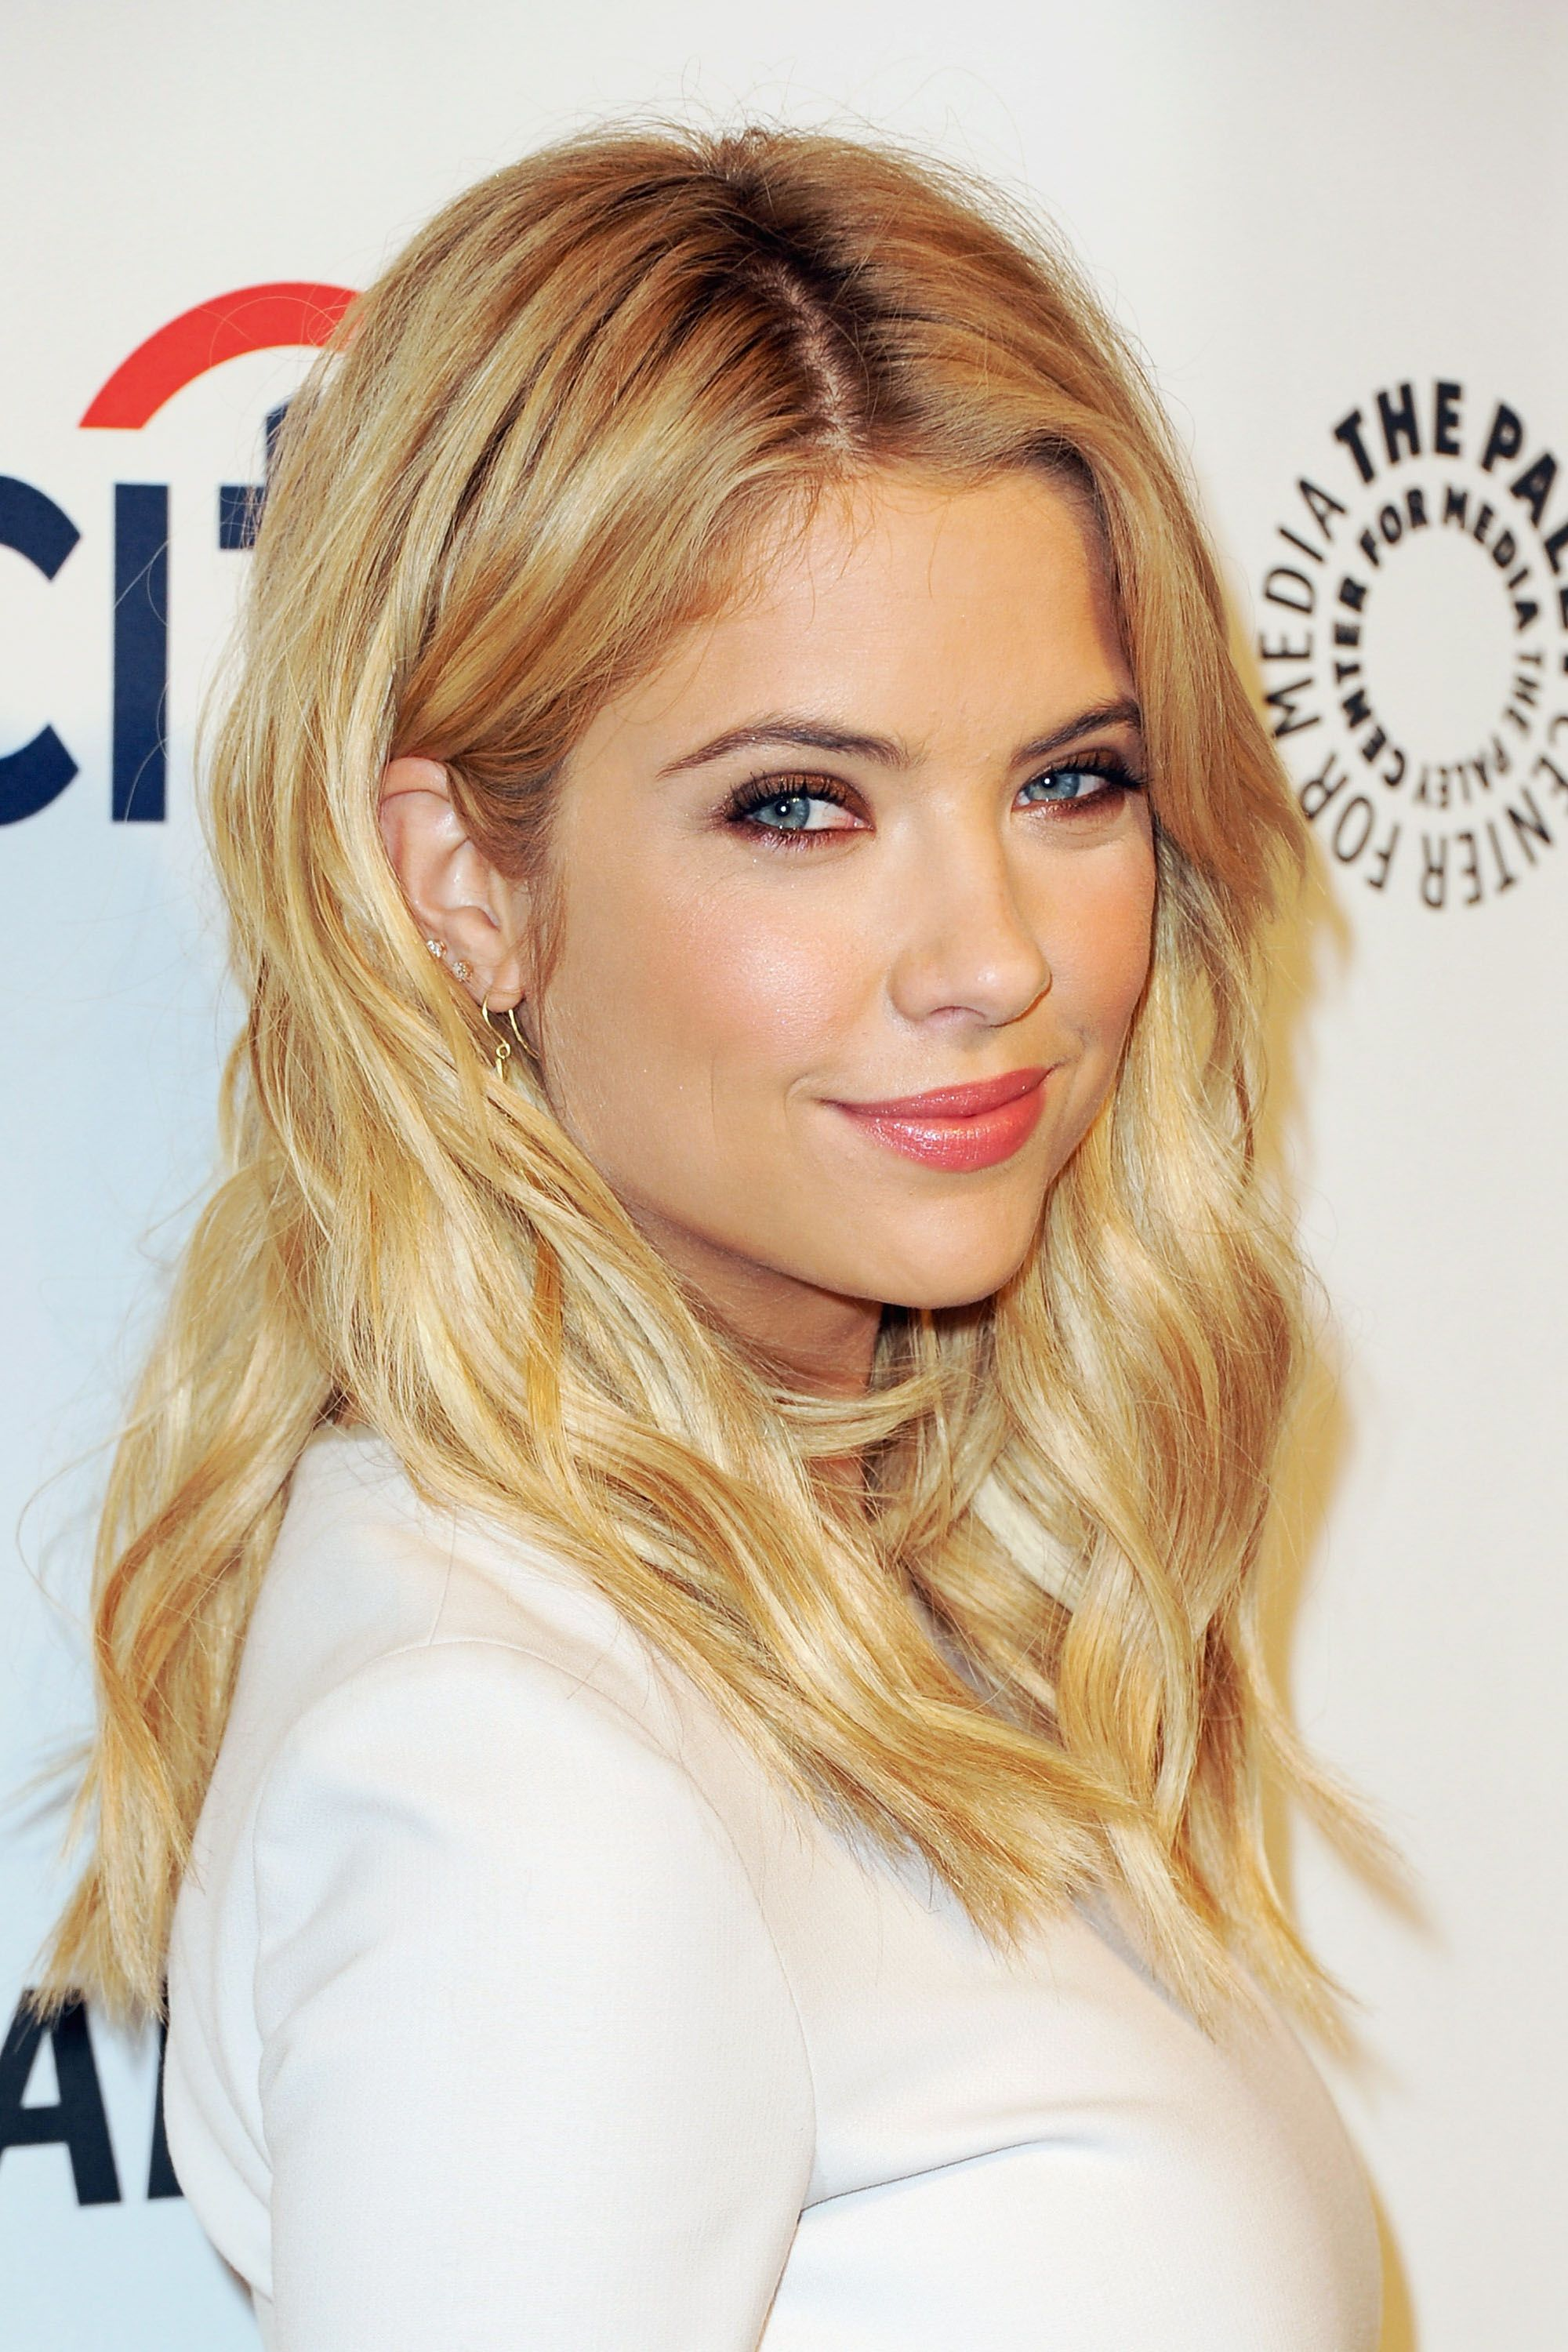 Swell The 18 Best Blonde Hairstyles In Hollywood Hairstyles For Women Draintrainus